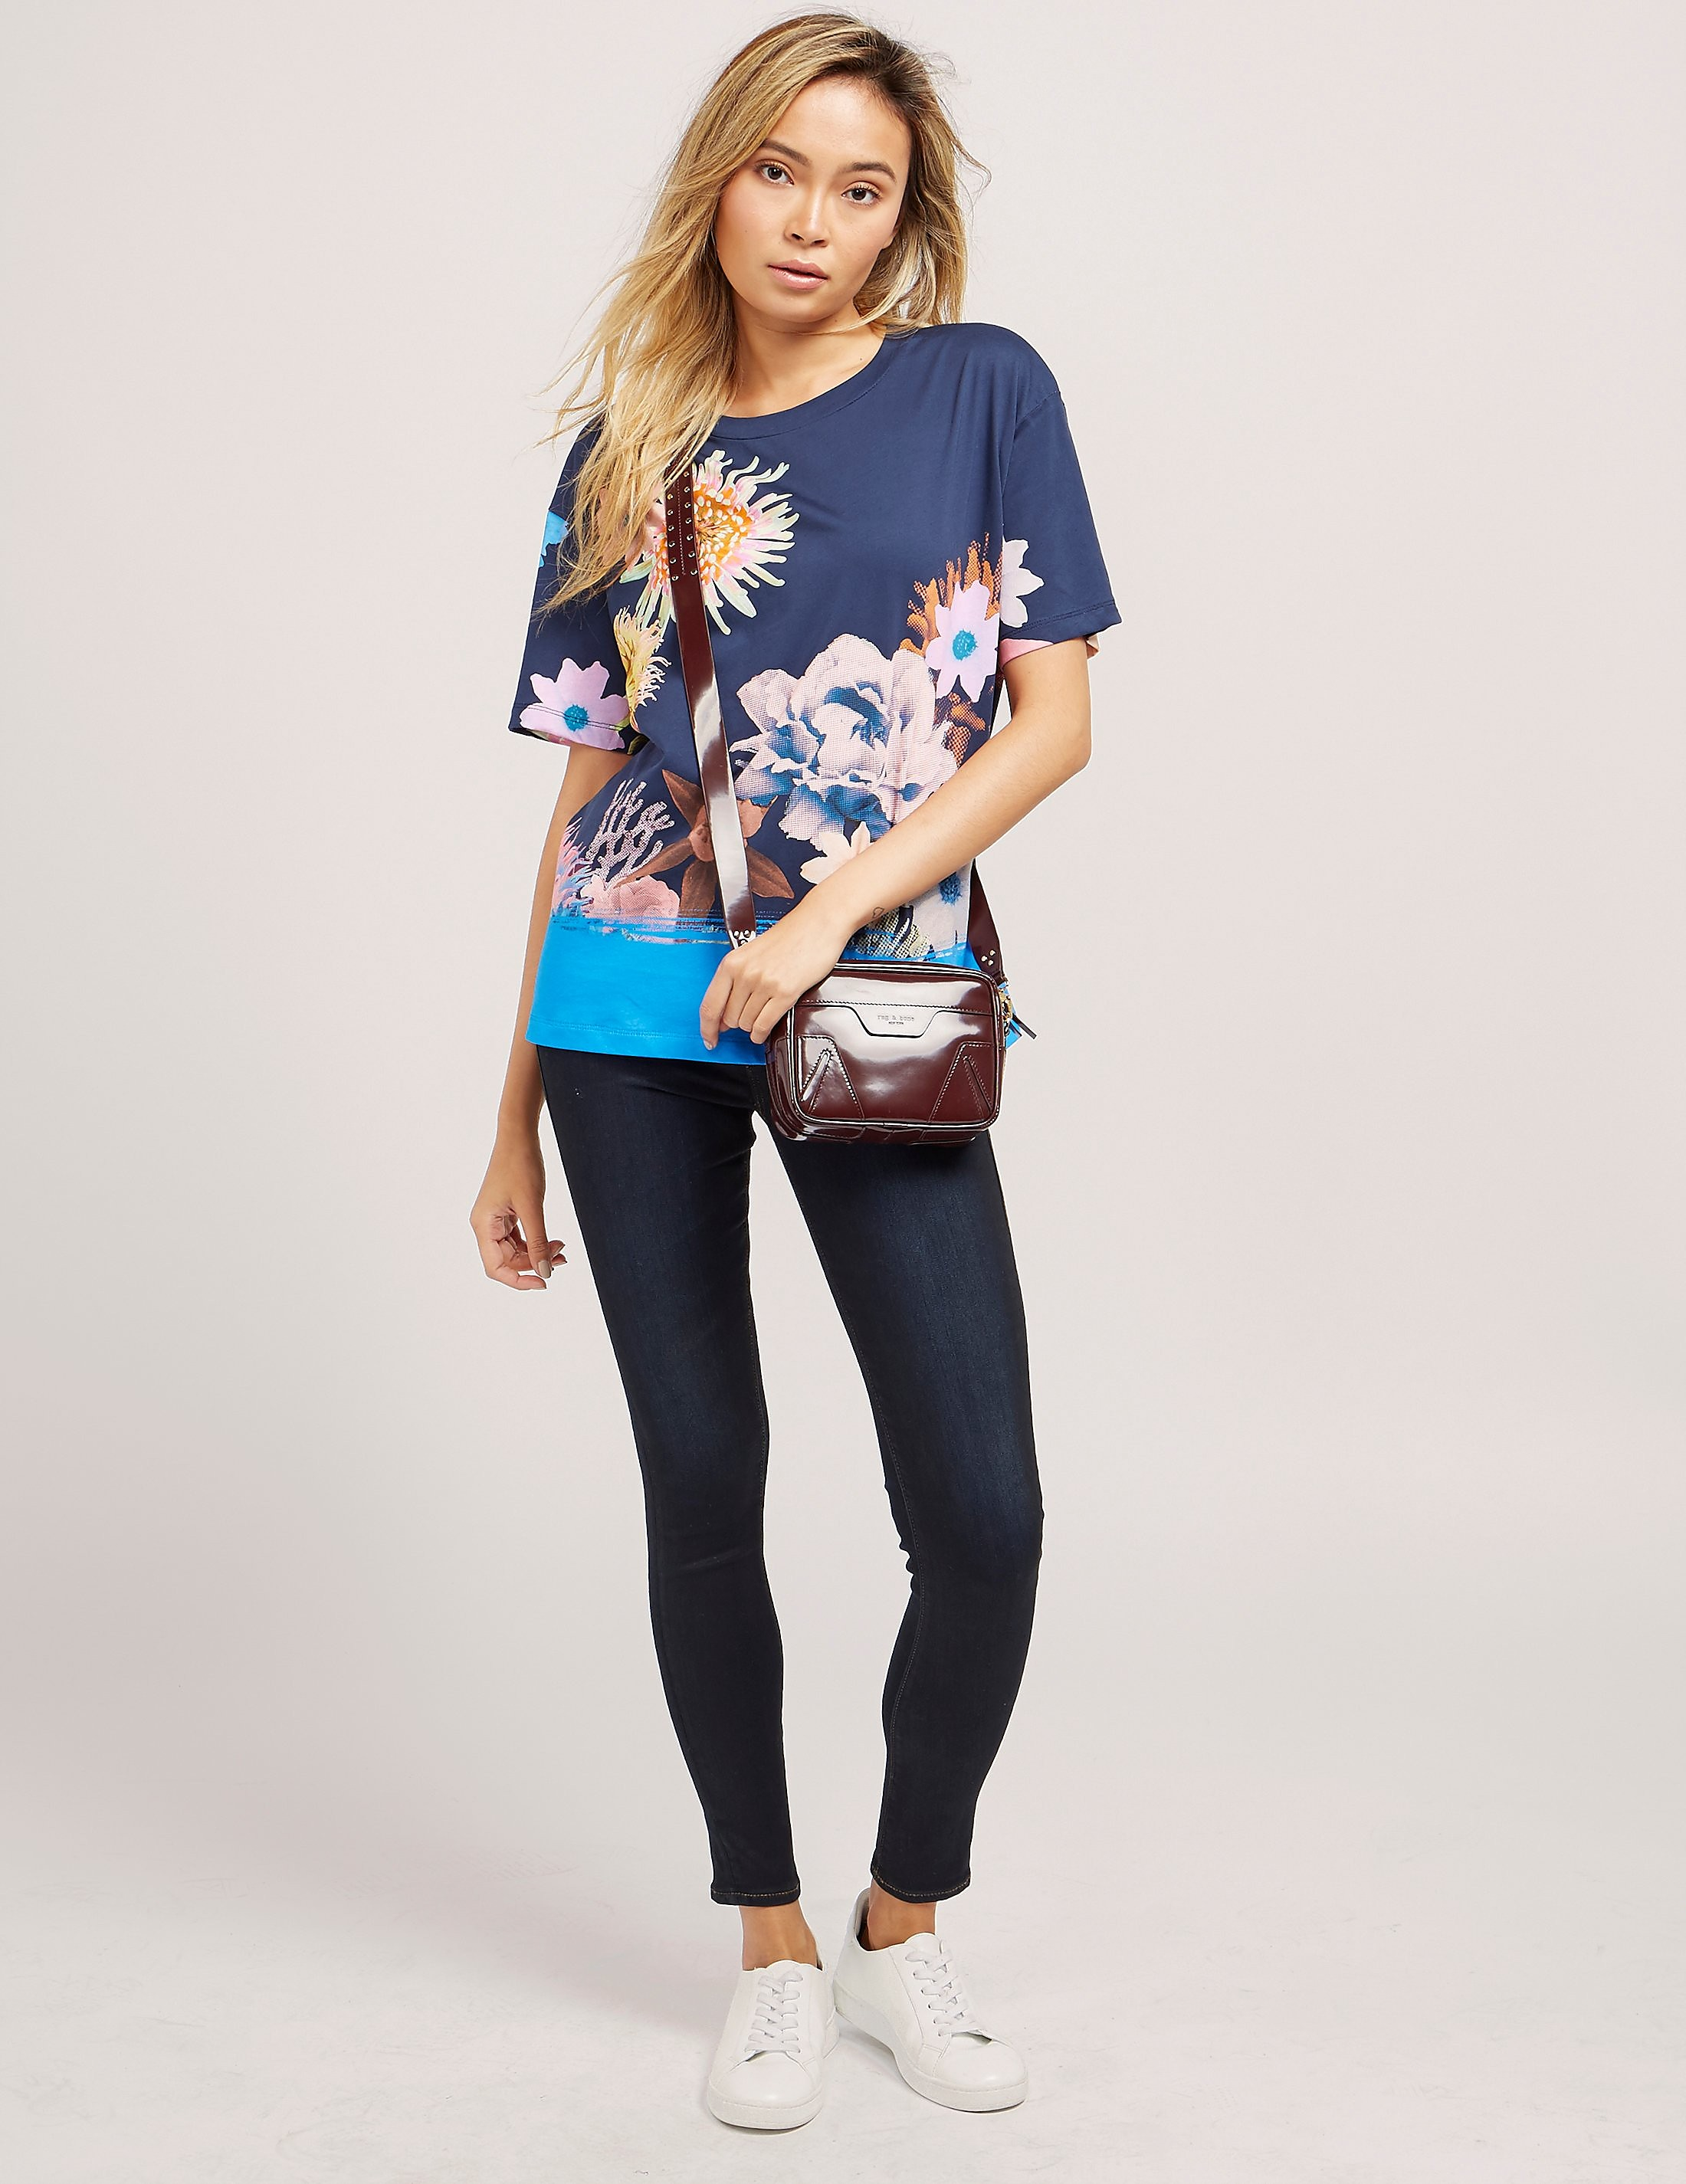 Paul Smith Ocean Floral Print T-Shirt